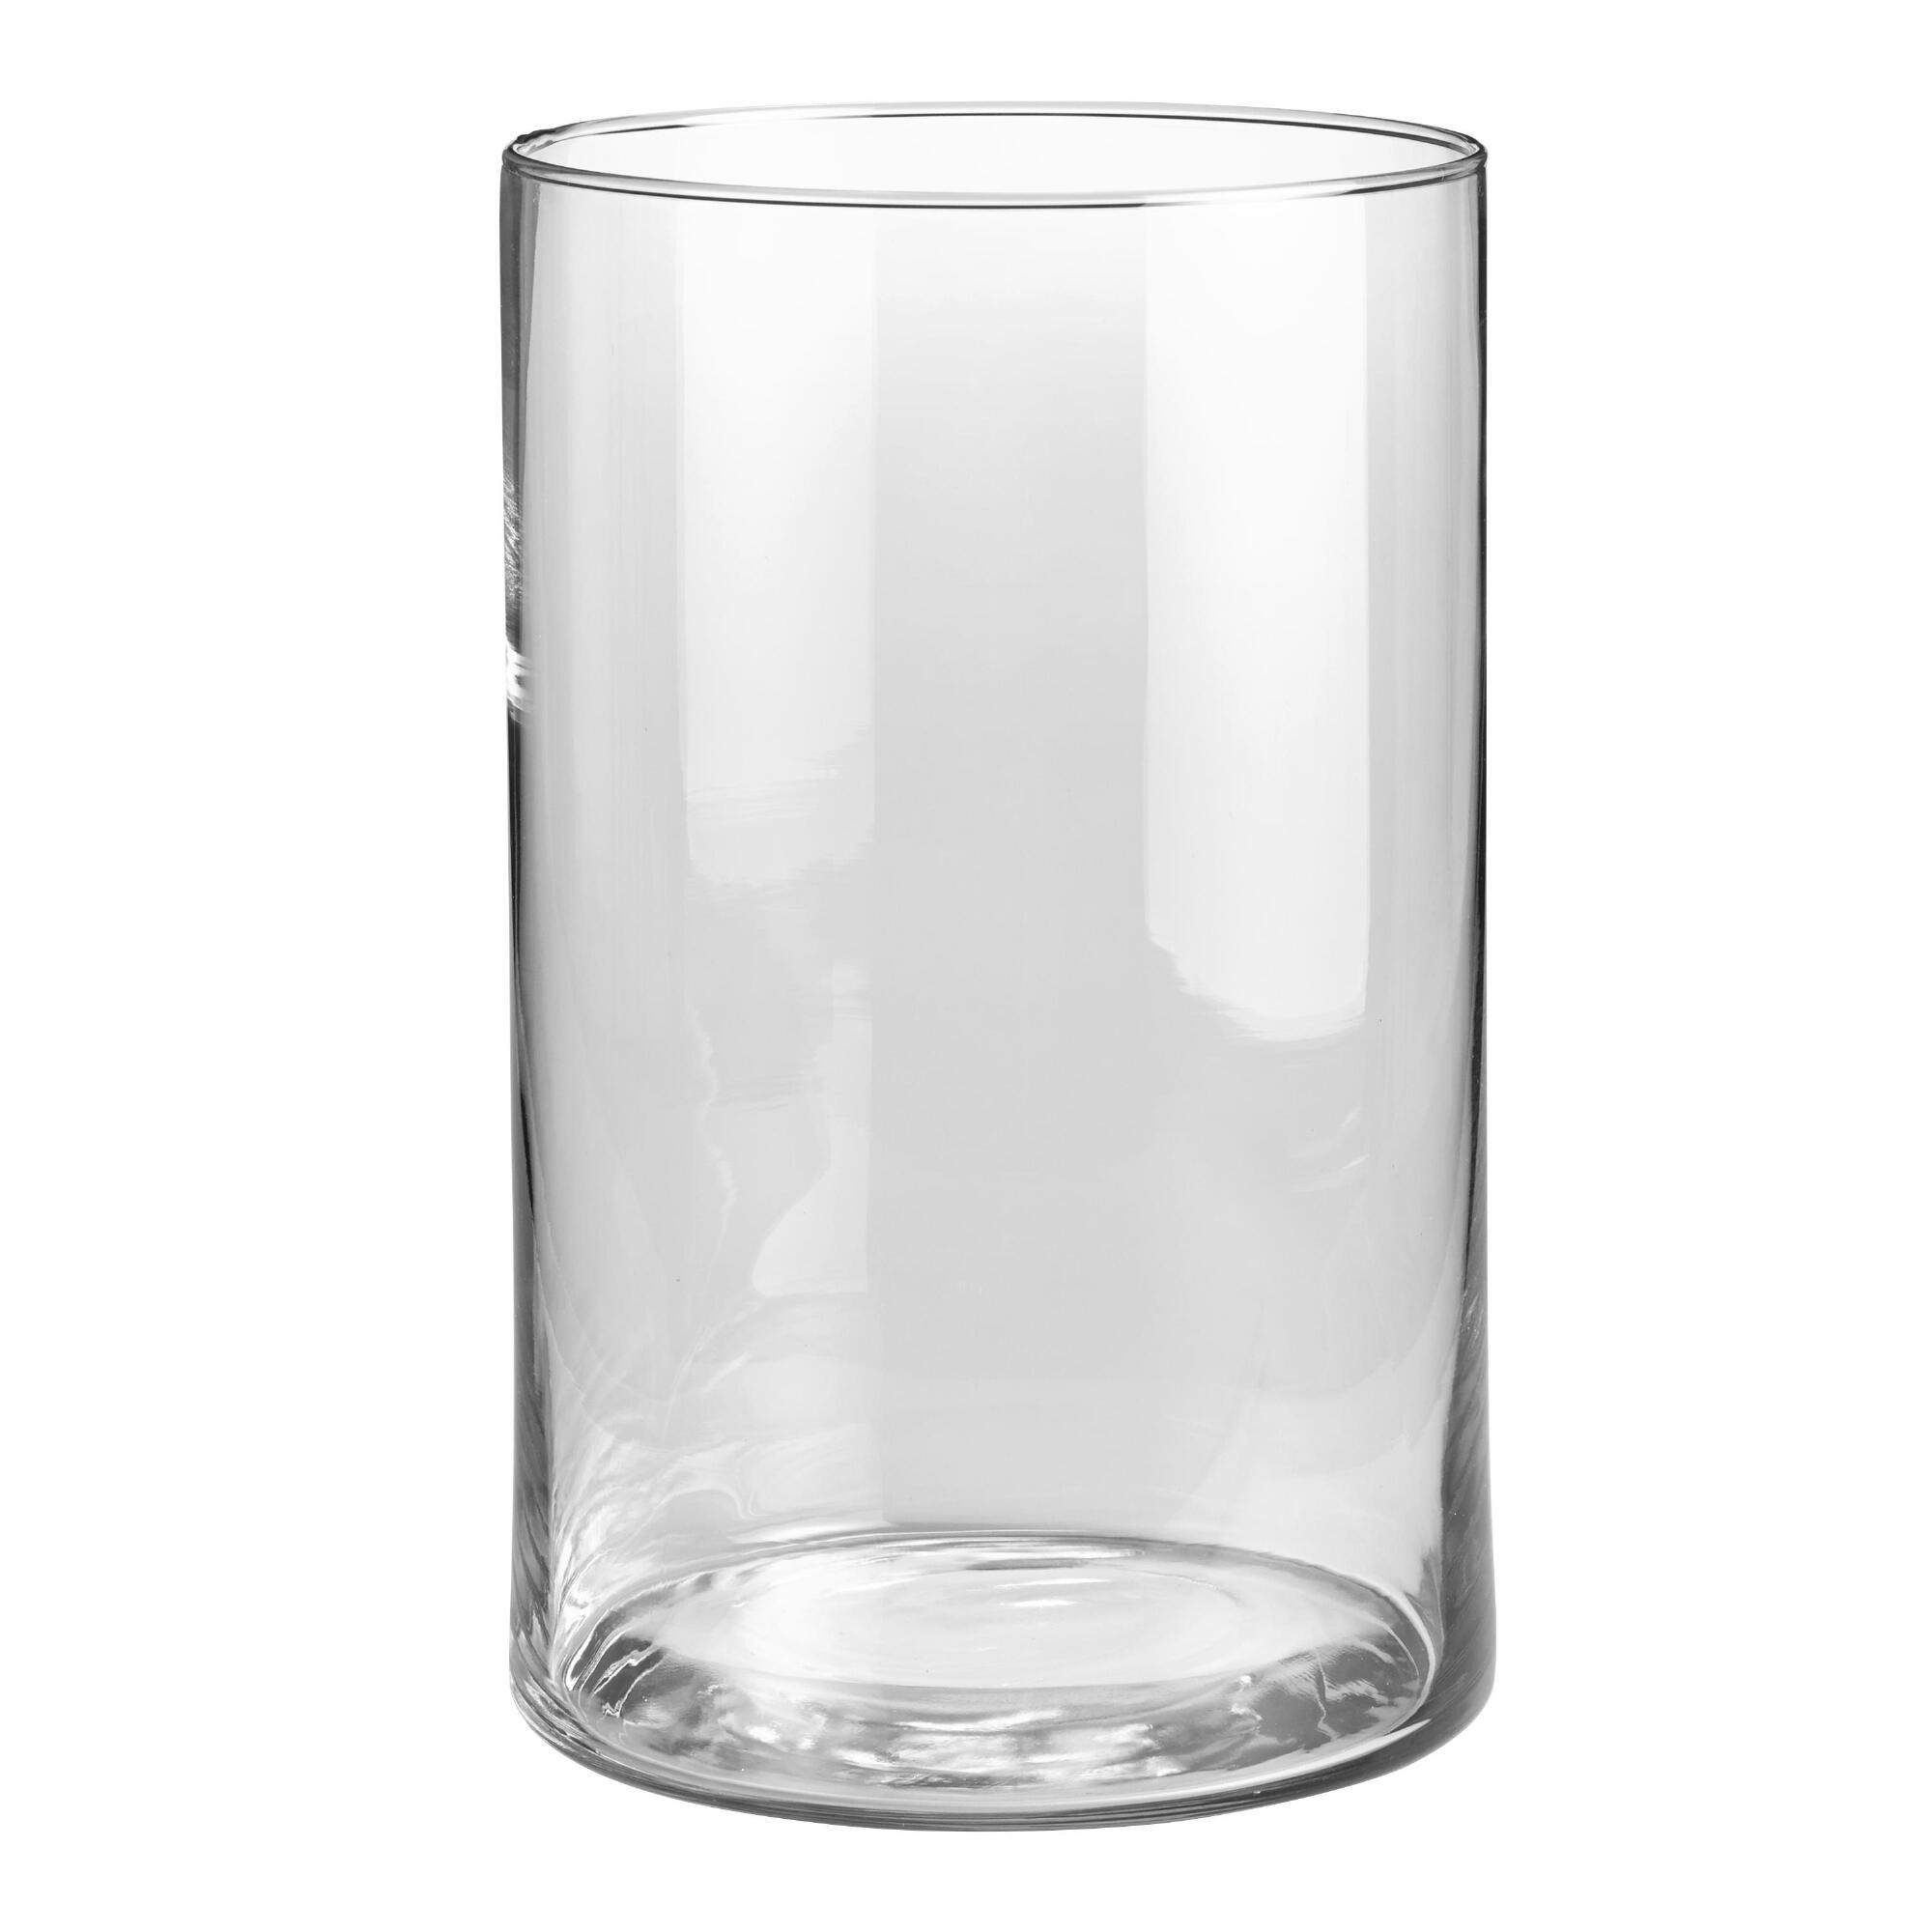 Eiffel Tower Vases - Clear - 12